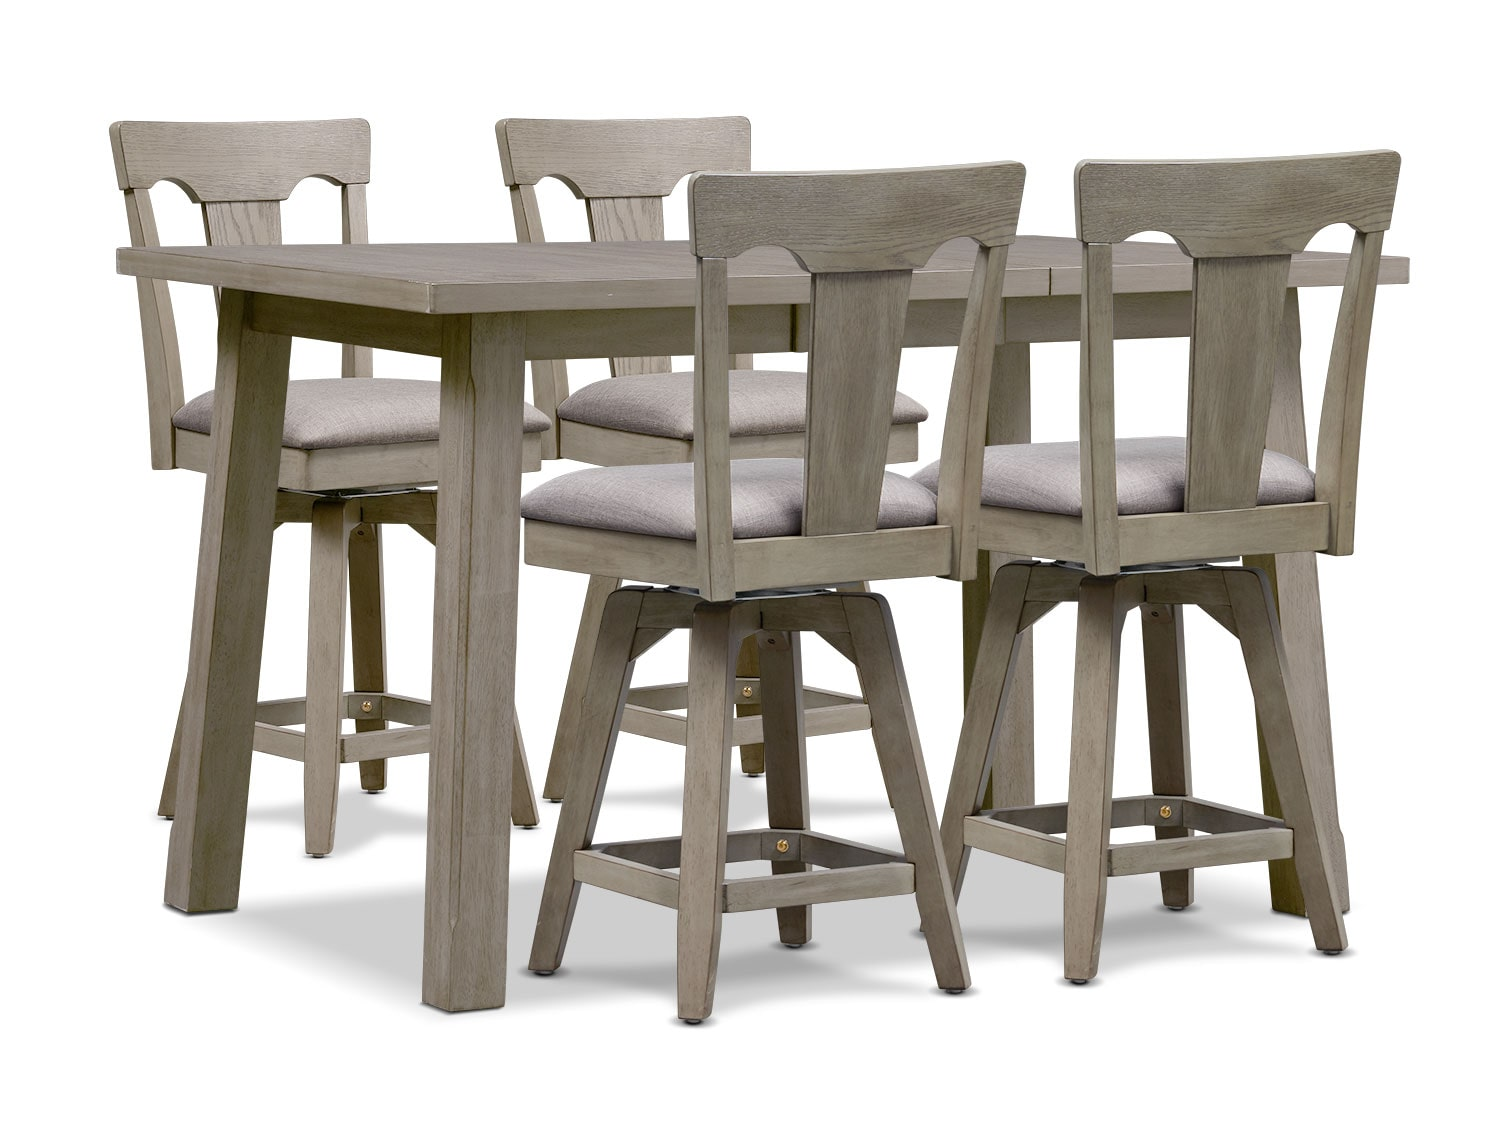 Dining Room Furniture - Maxton Counter-Height Table and 4 Stools - Graystone